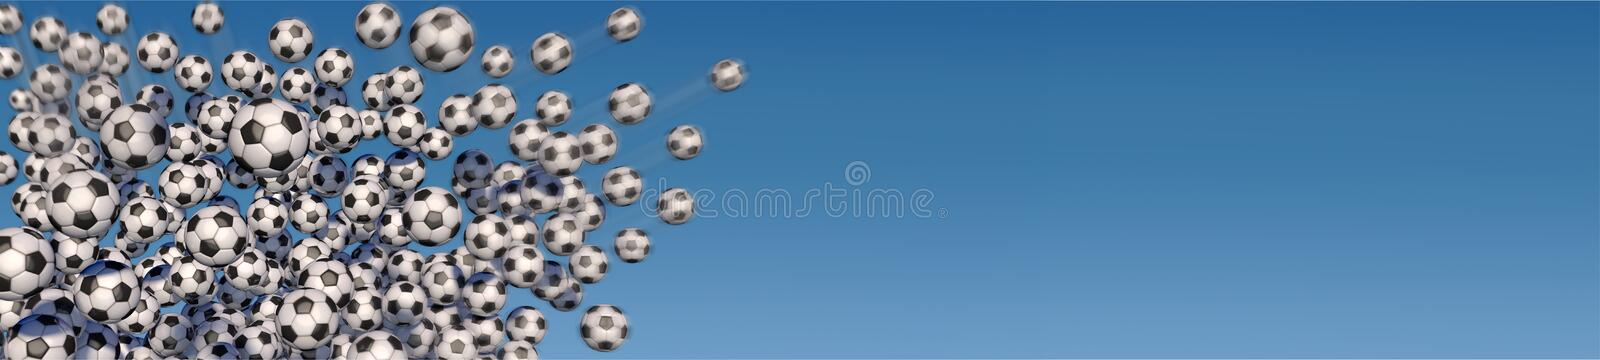 Flying soccer balls against a blue sky royalty free illustration